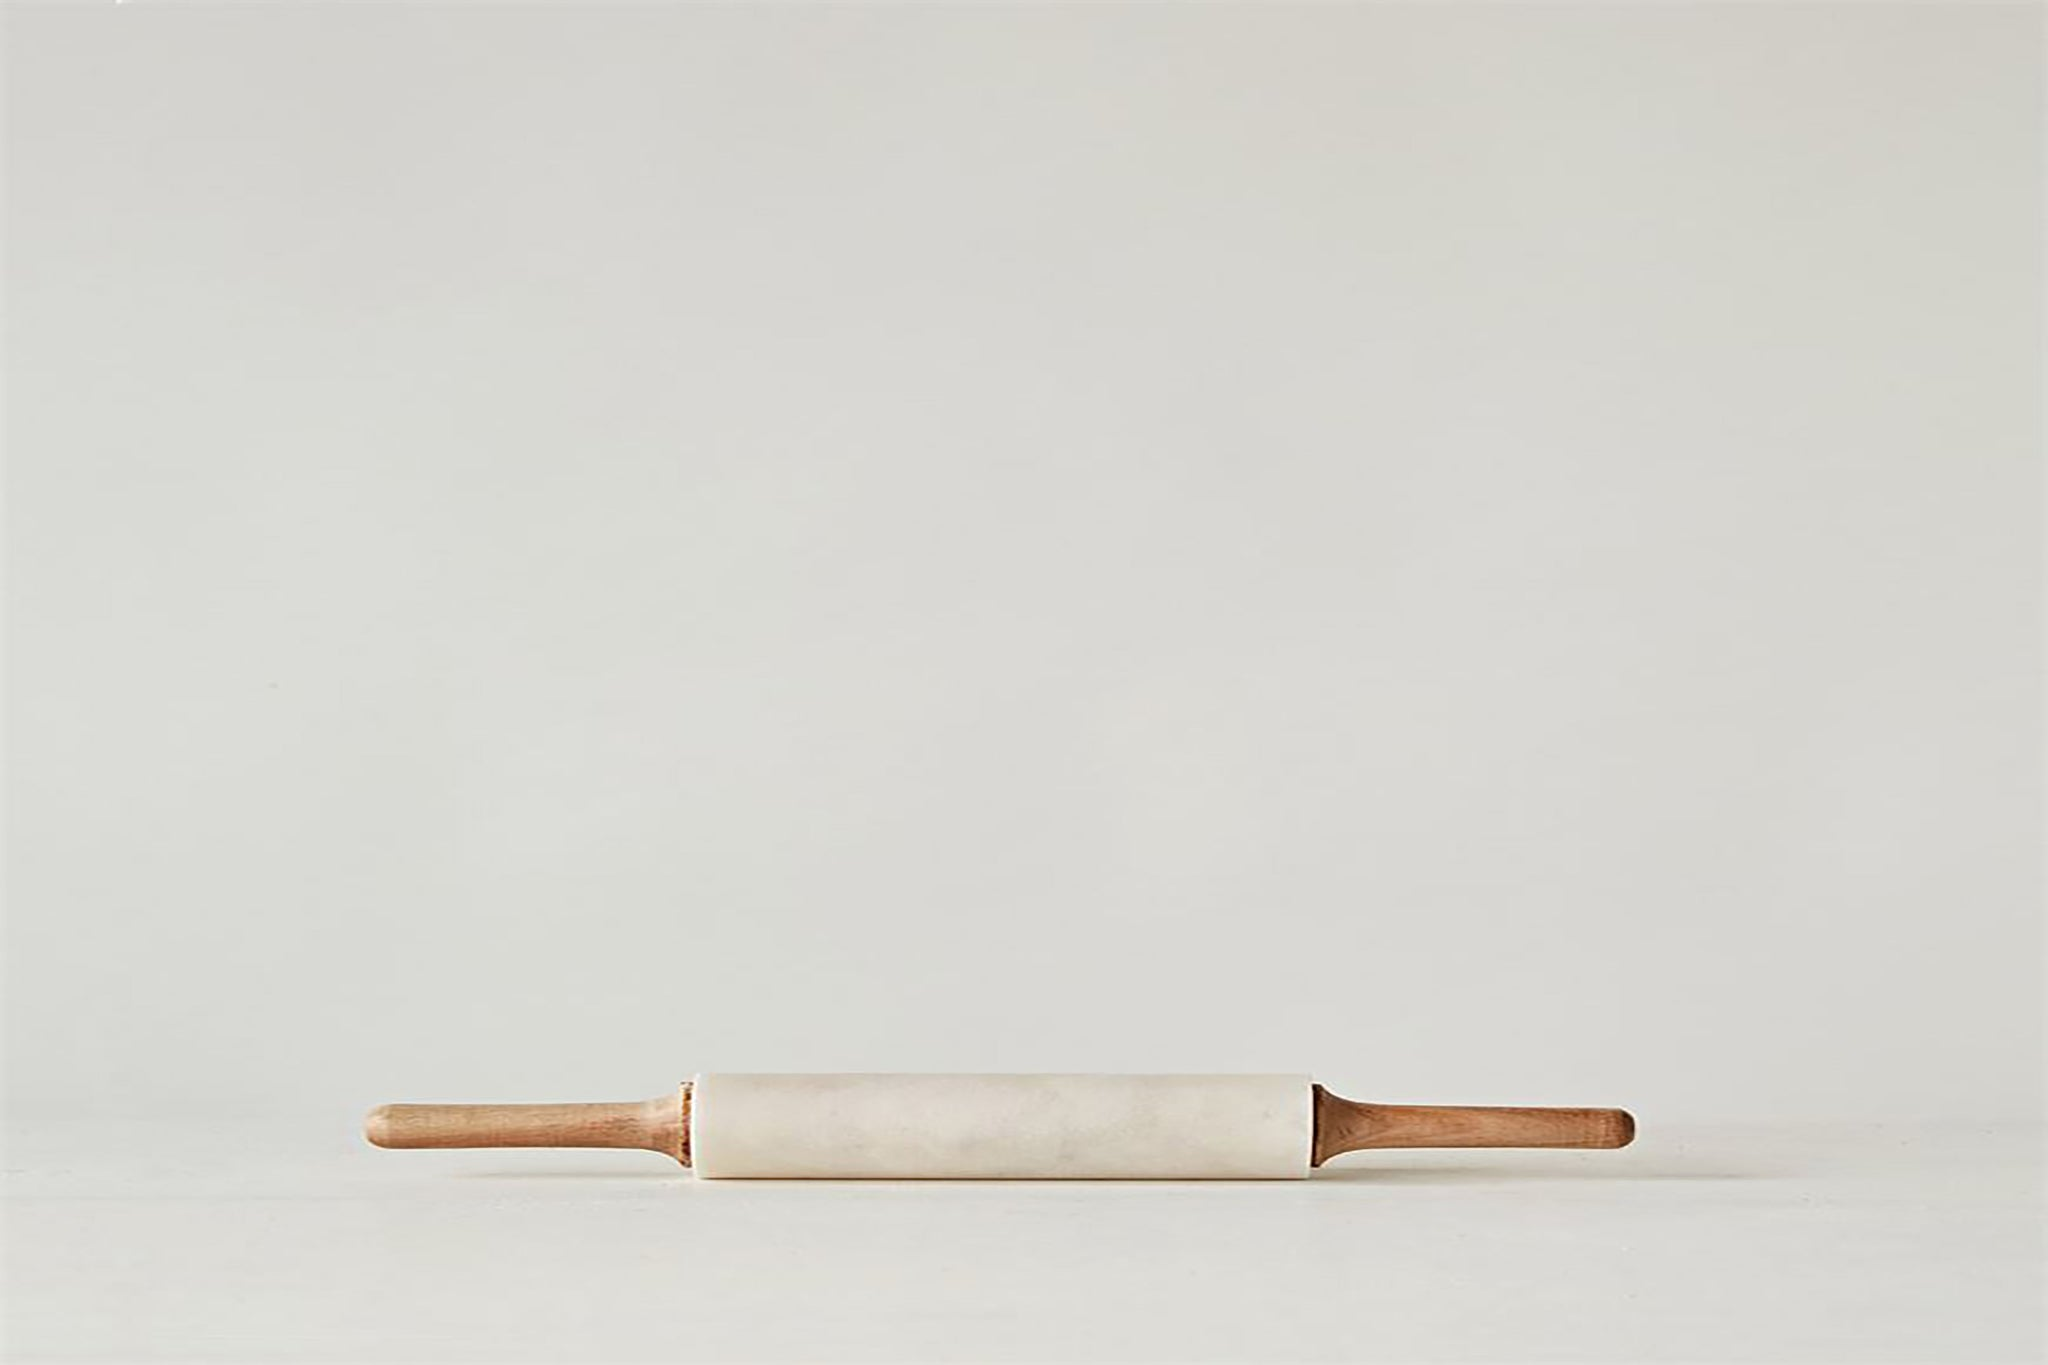 Marble Kitchenware rolling pin